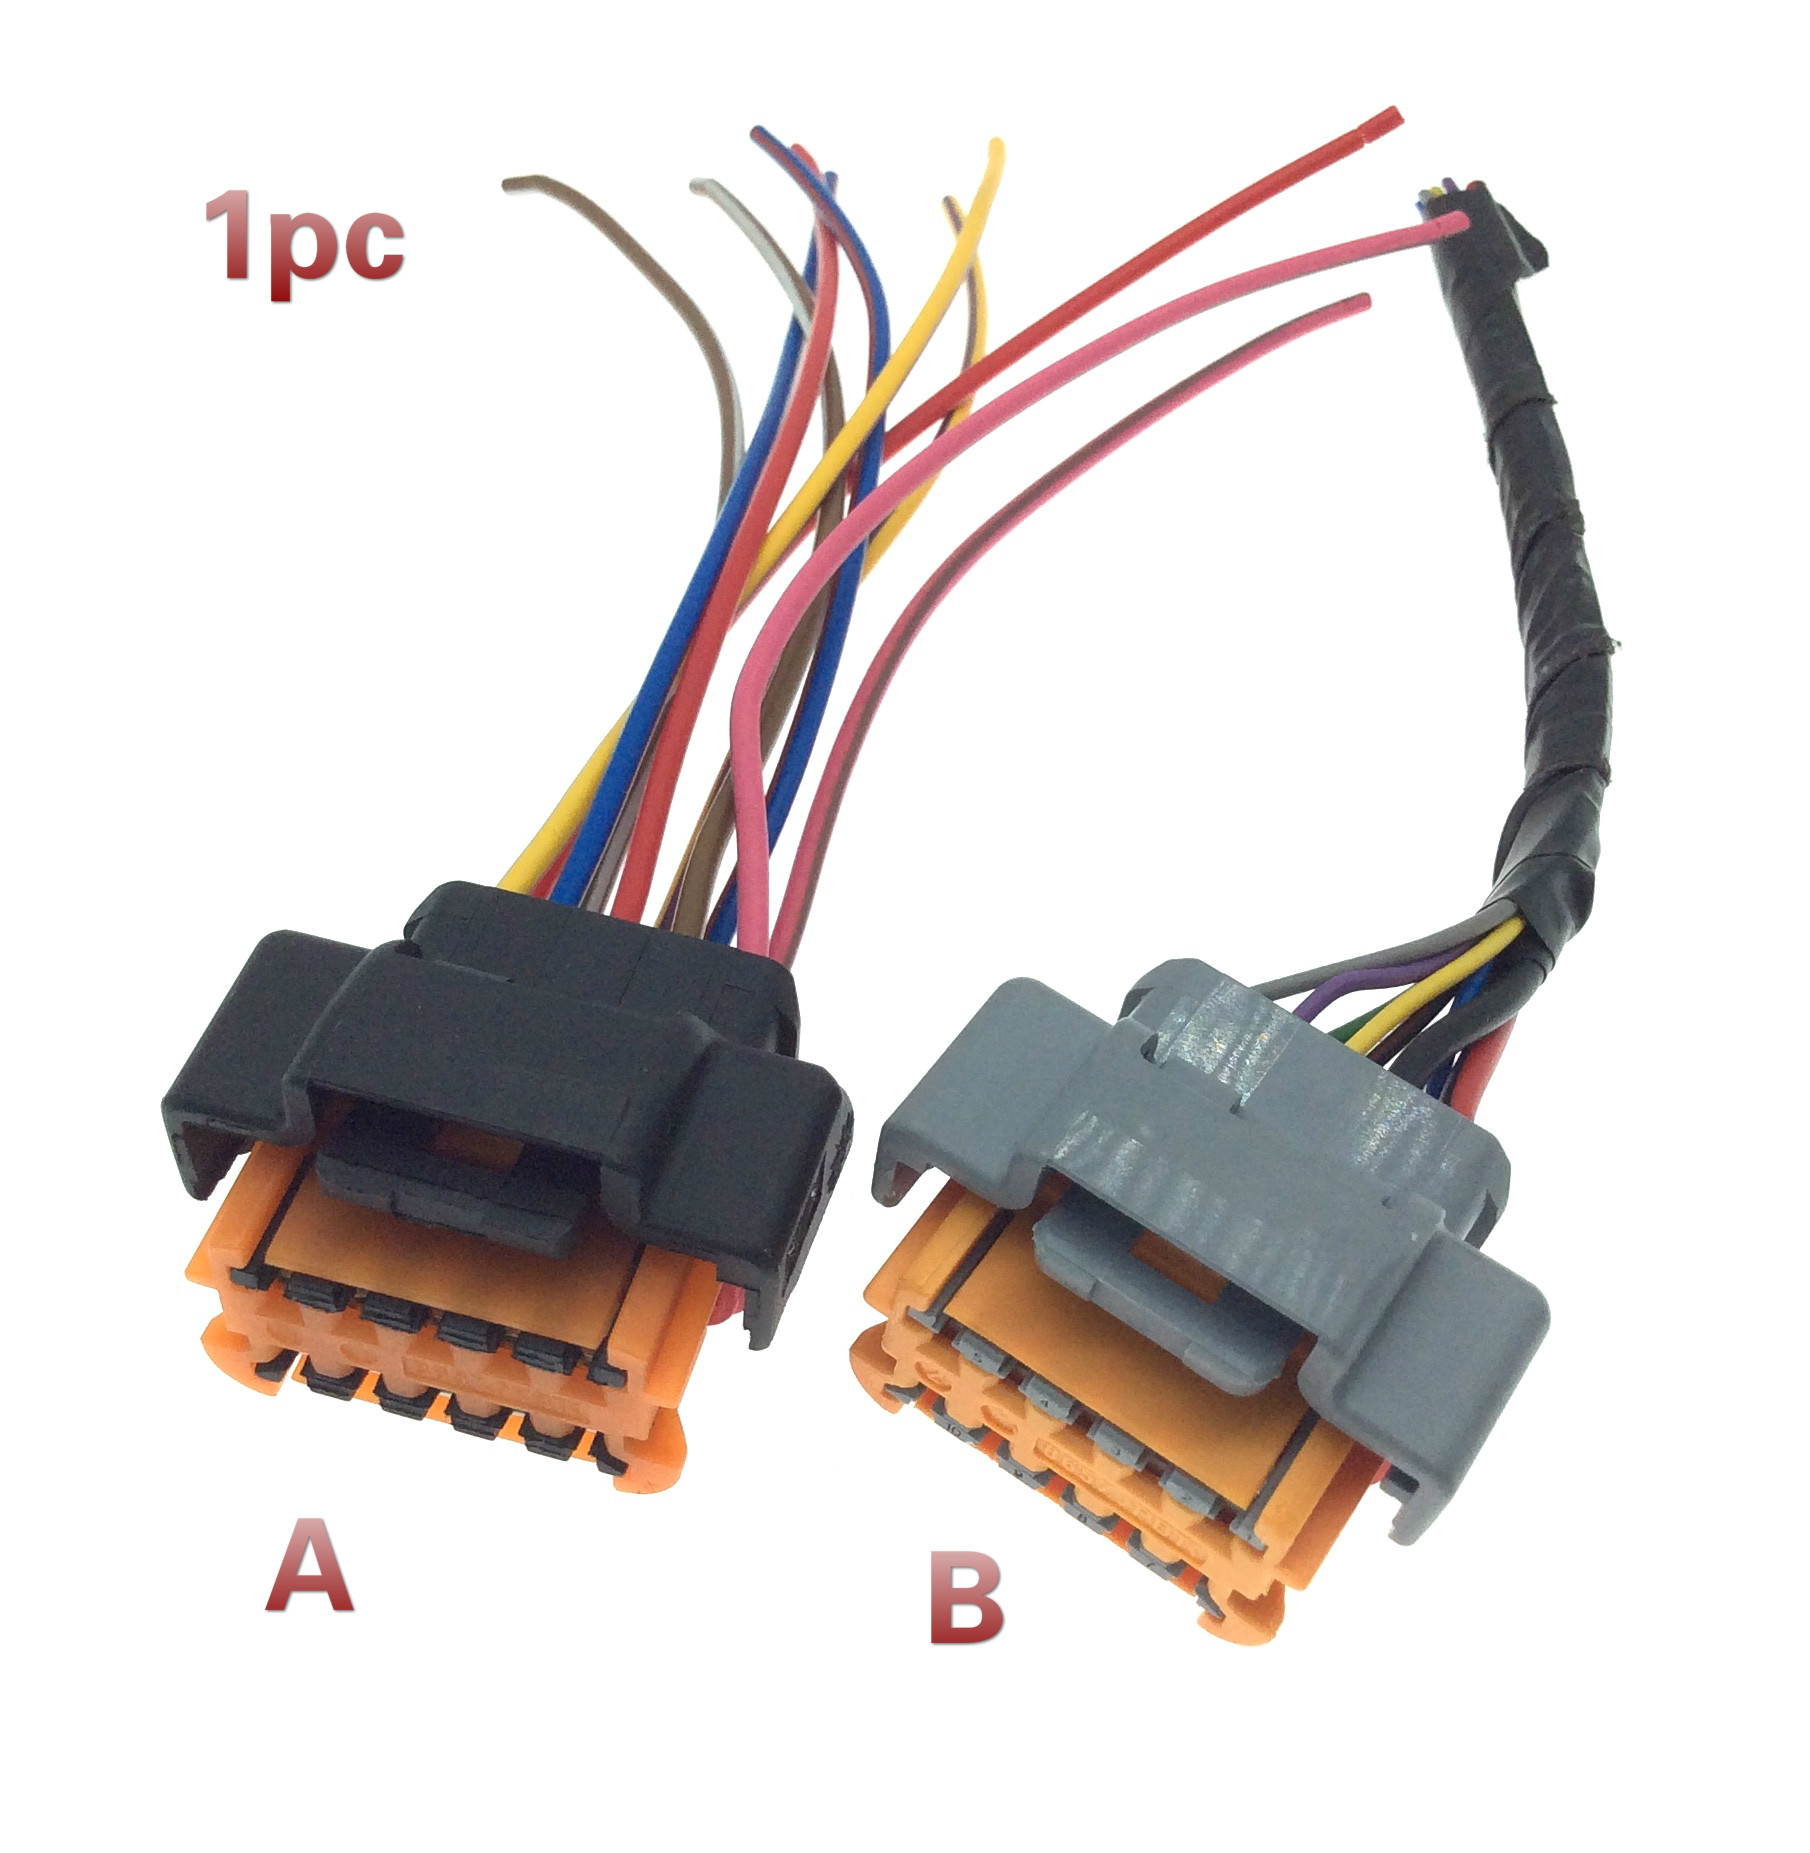 1pc original brand new for Peugeot 508/408/308 headlight plug wiring harness connector cable housing